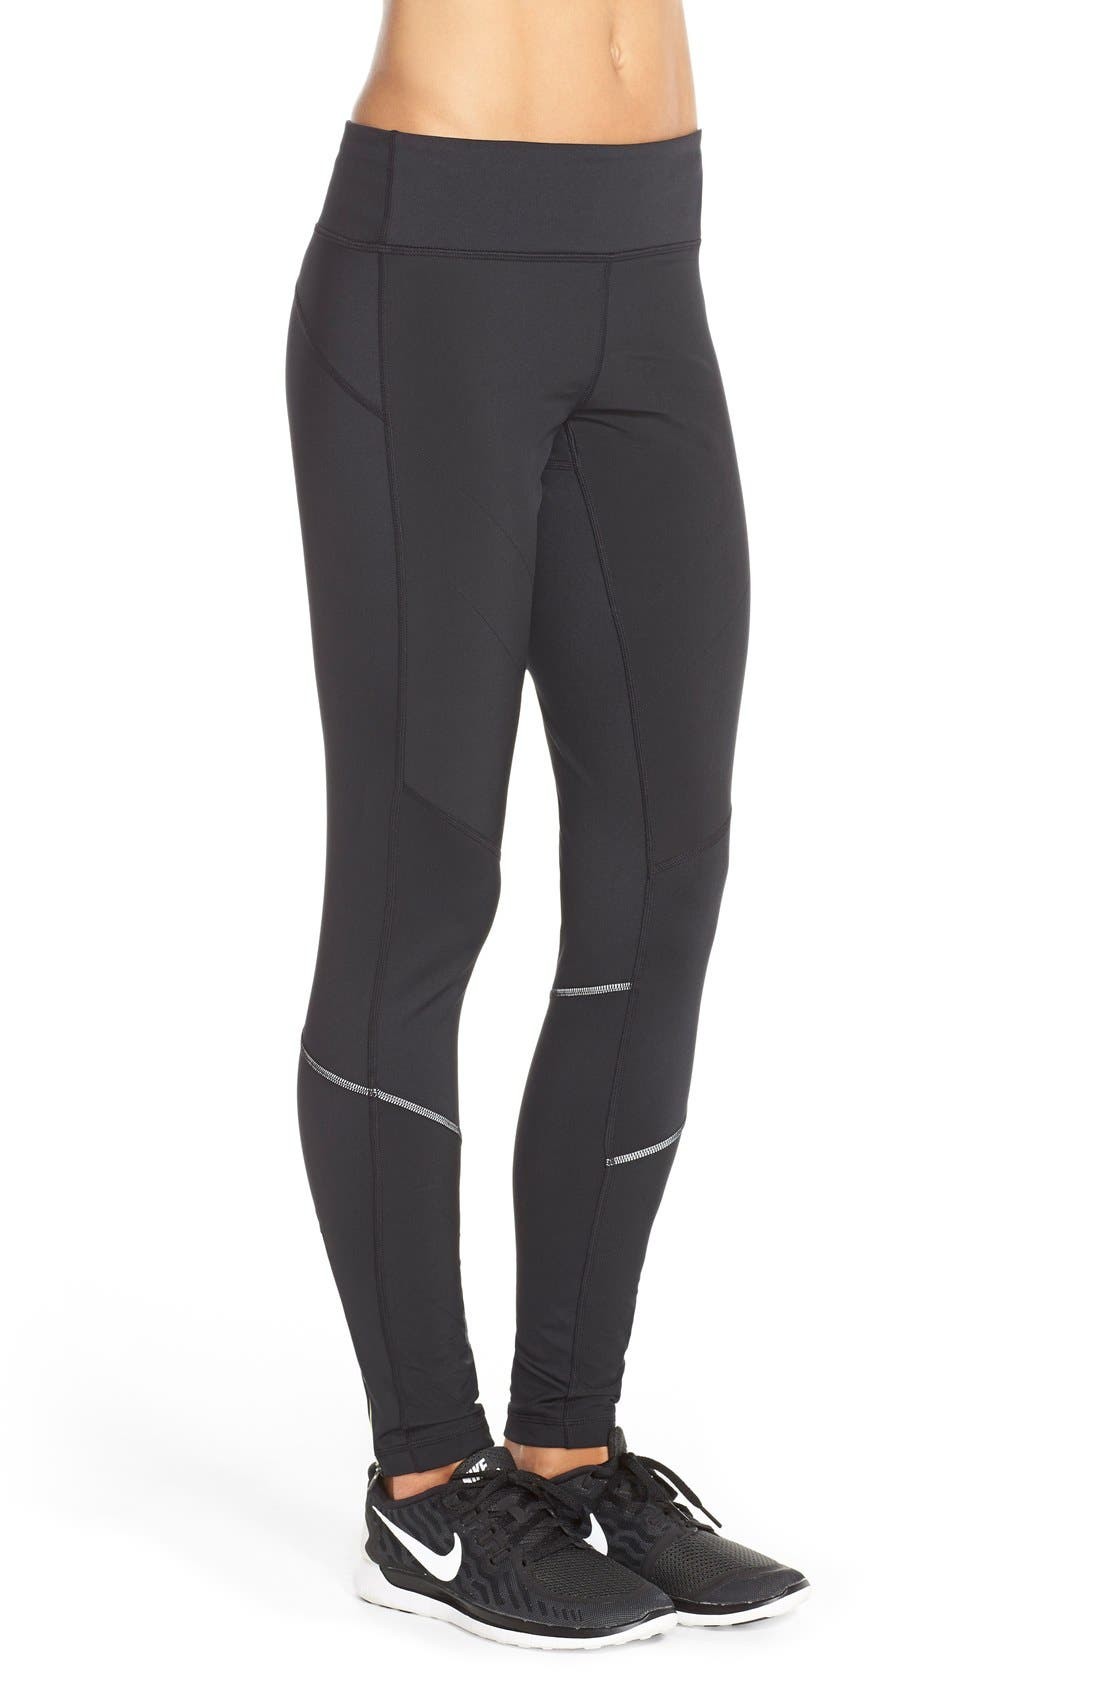 Alternate Image 3  - Zella 'Chill Out' Running Tights